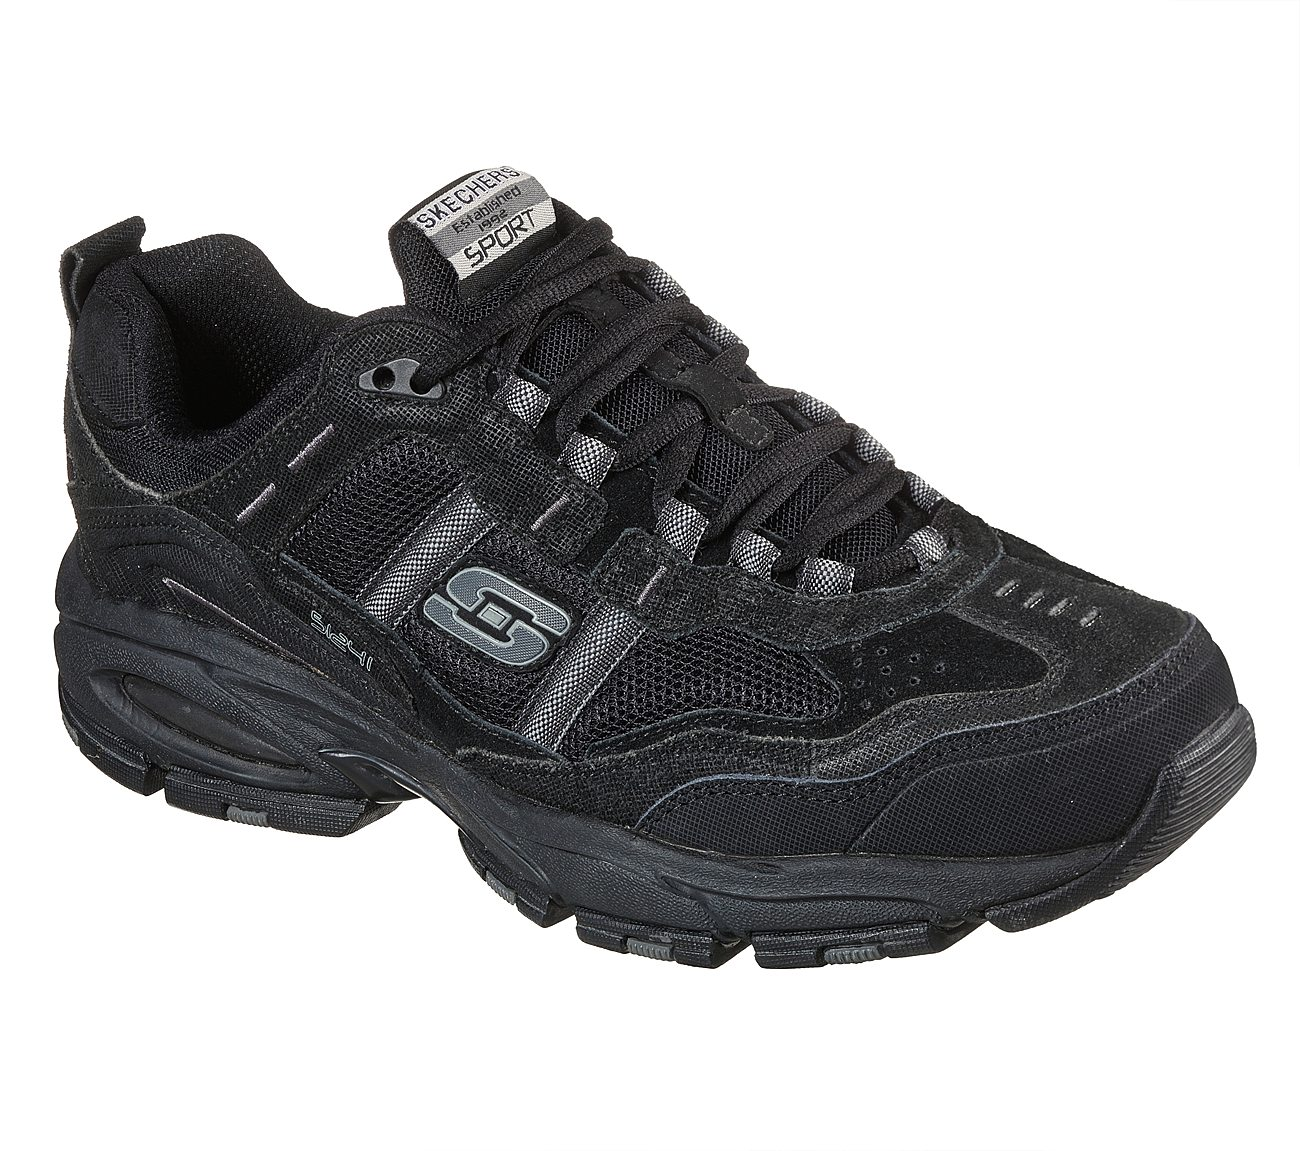 884ecf4369ee7 Buy SKECHERS Vigor 2.0 - Trait Sport Shoes only $65.00